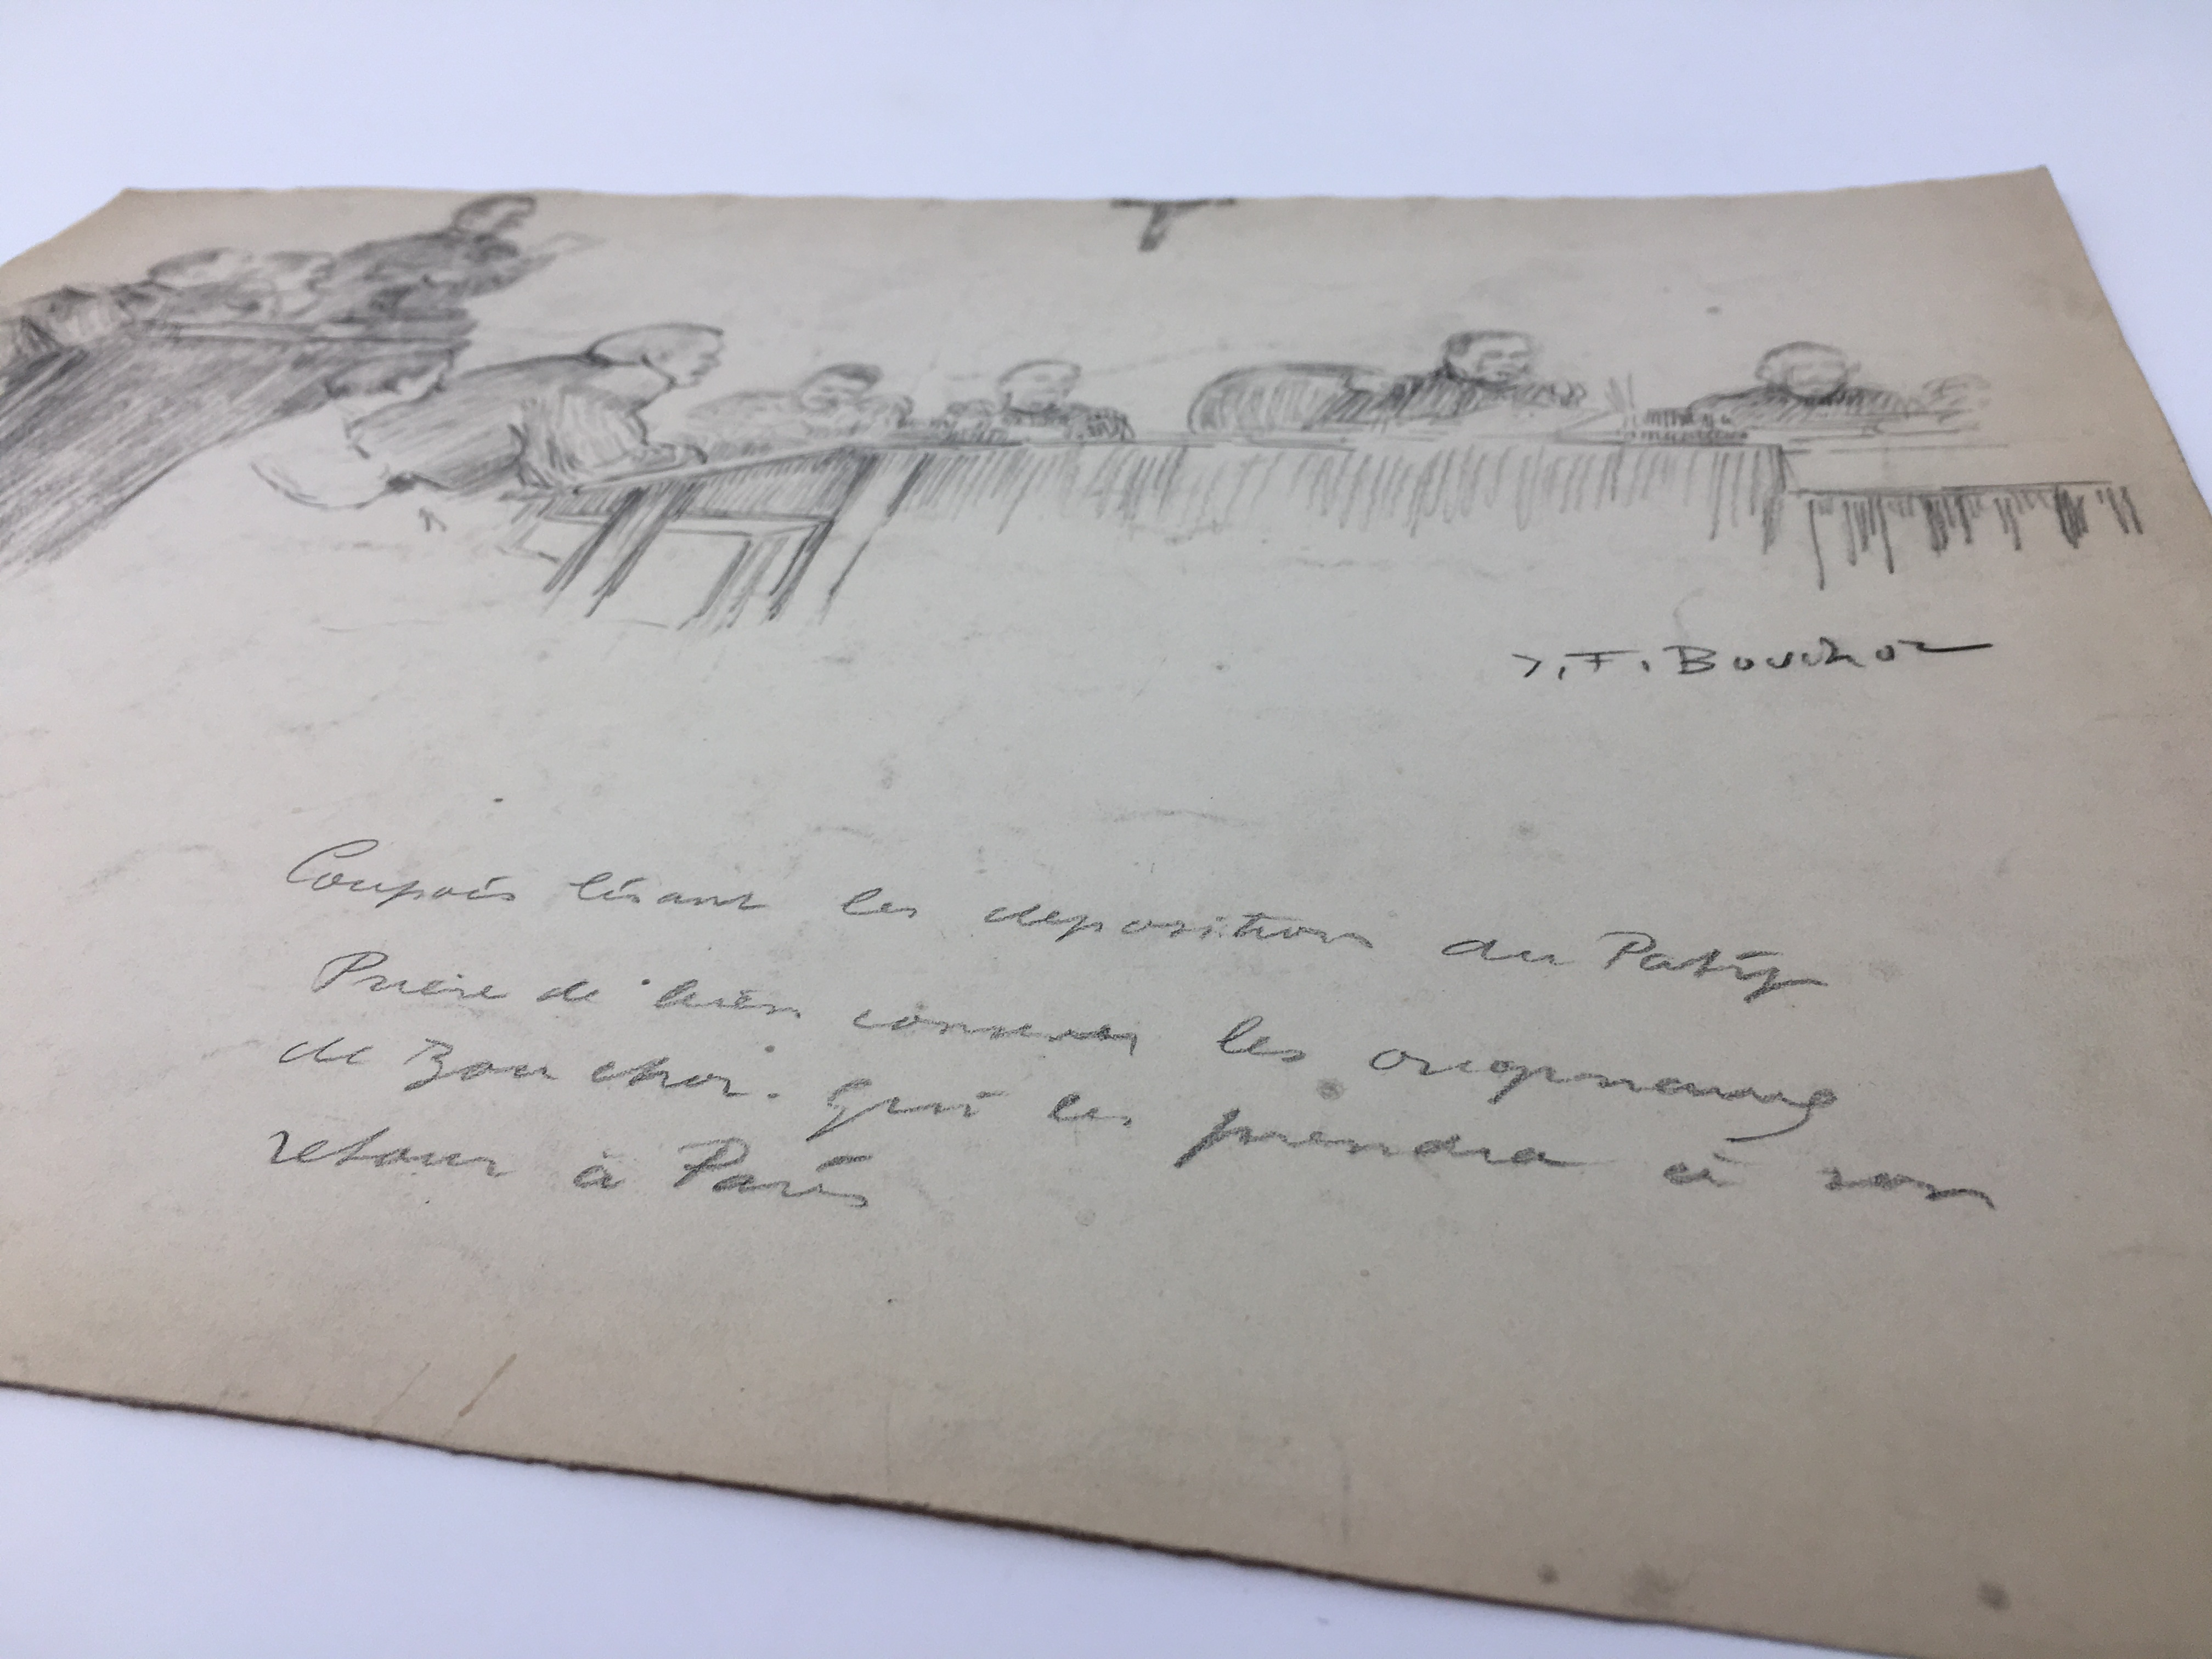 J'Accuse Newspaper, Emile Zola Quote, Signed Dreyfus Portrait, Rare Trial Drawings & Schwartzkoppen - Image 32 of 74